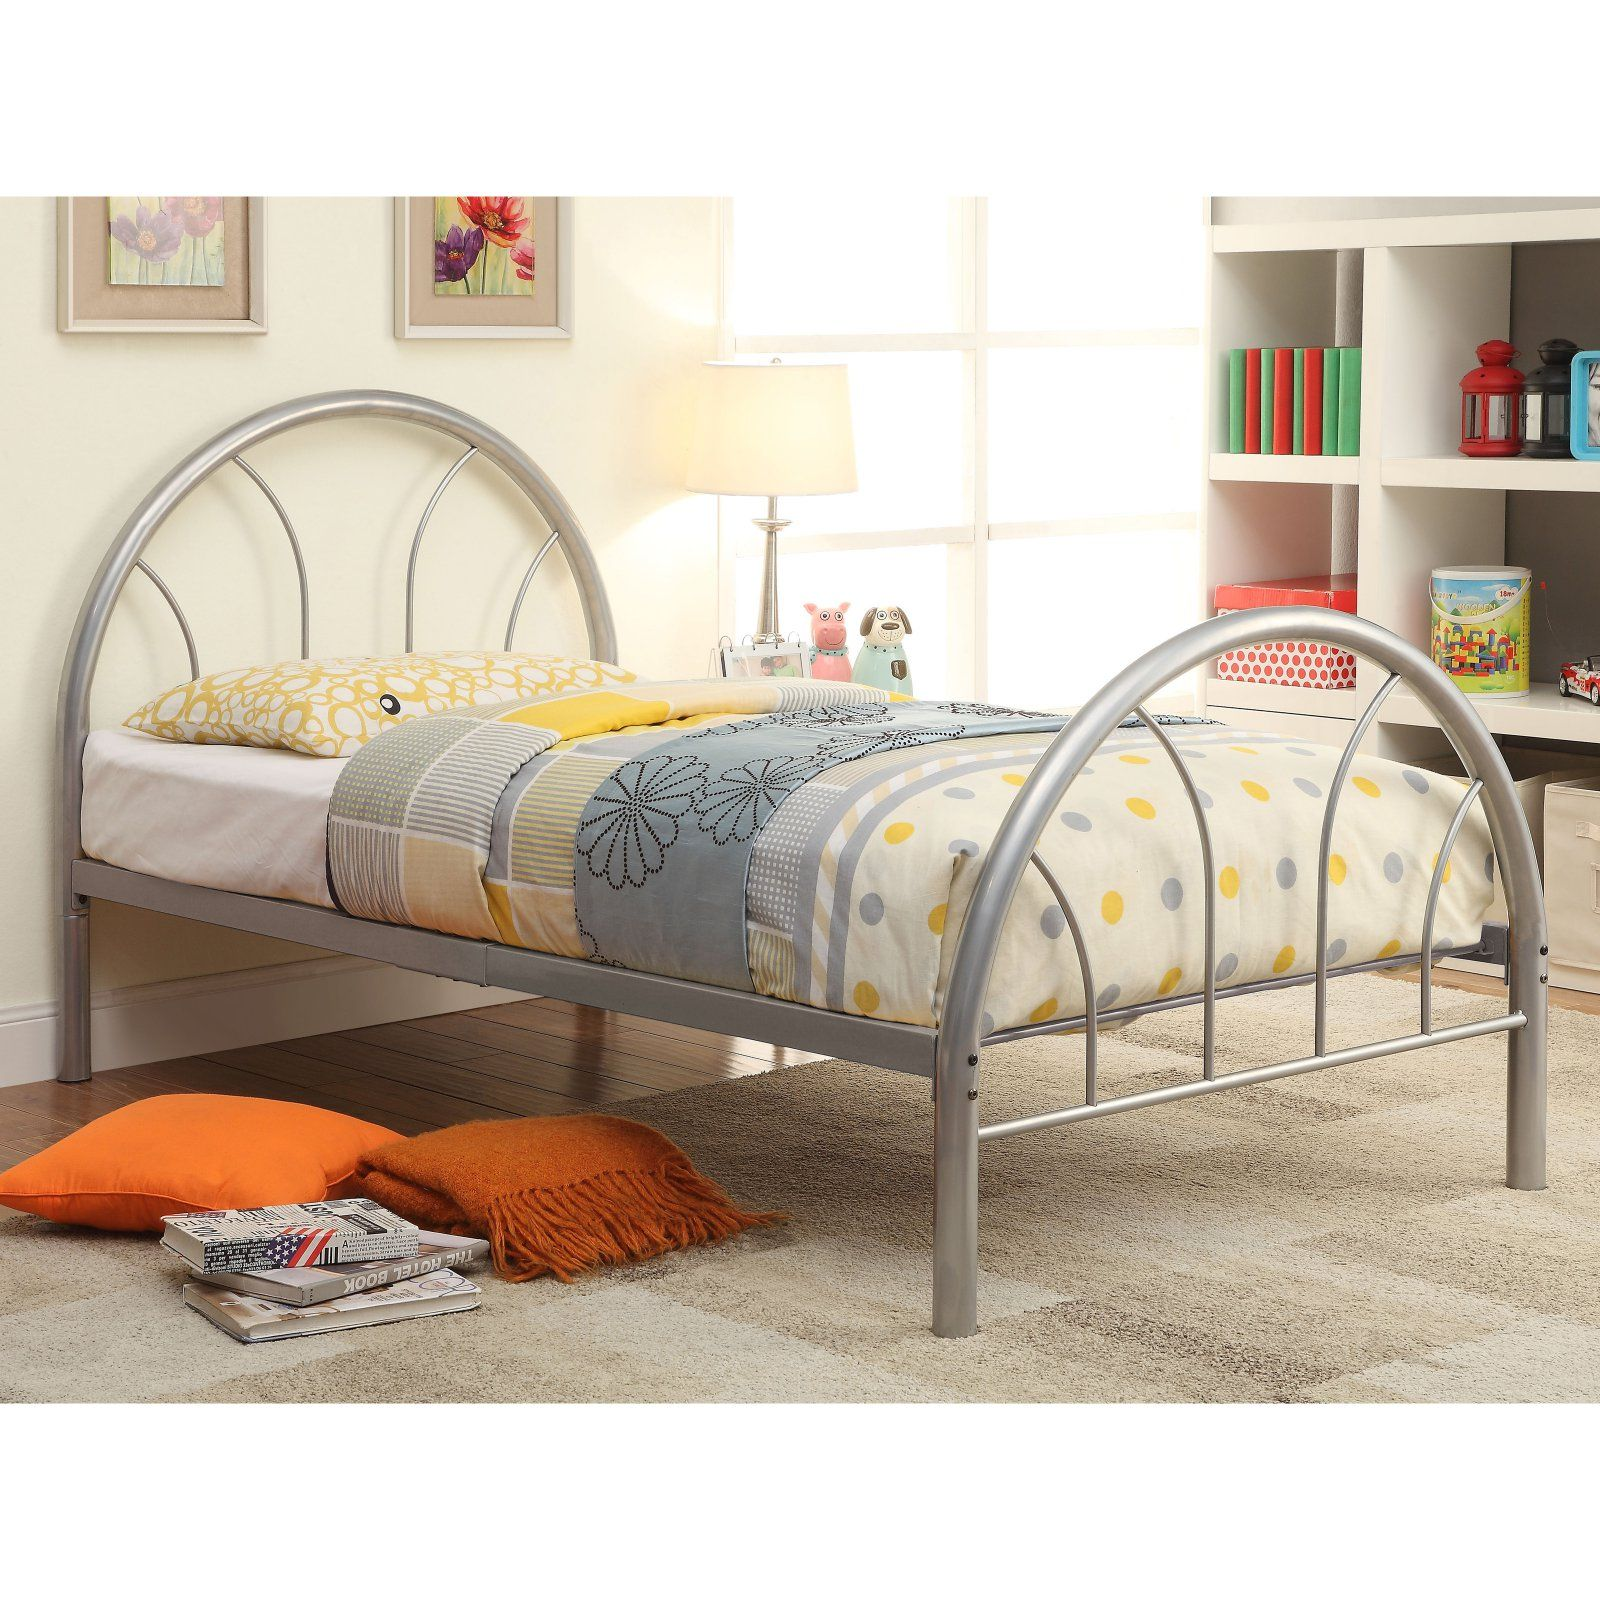 new styles 2c583 aa200 Furniture of America Benjamin Metal Youth Bed, Size: Full ...